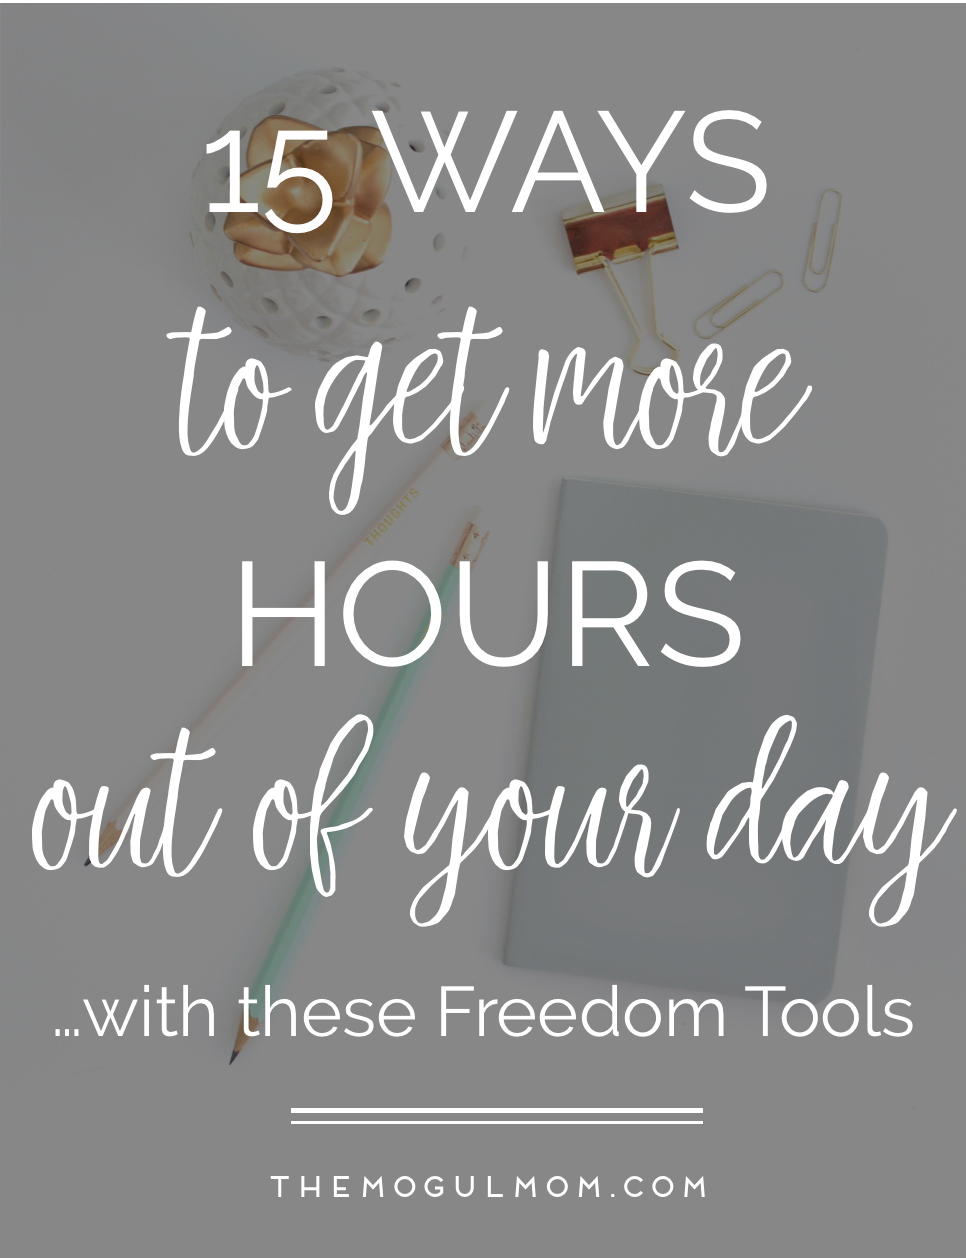 Freedom Tools: 15 Ways to Get More Hours Out of Every Day